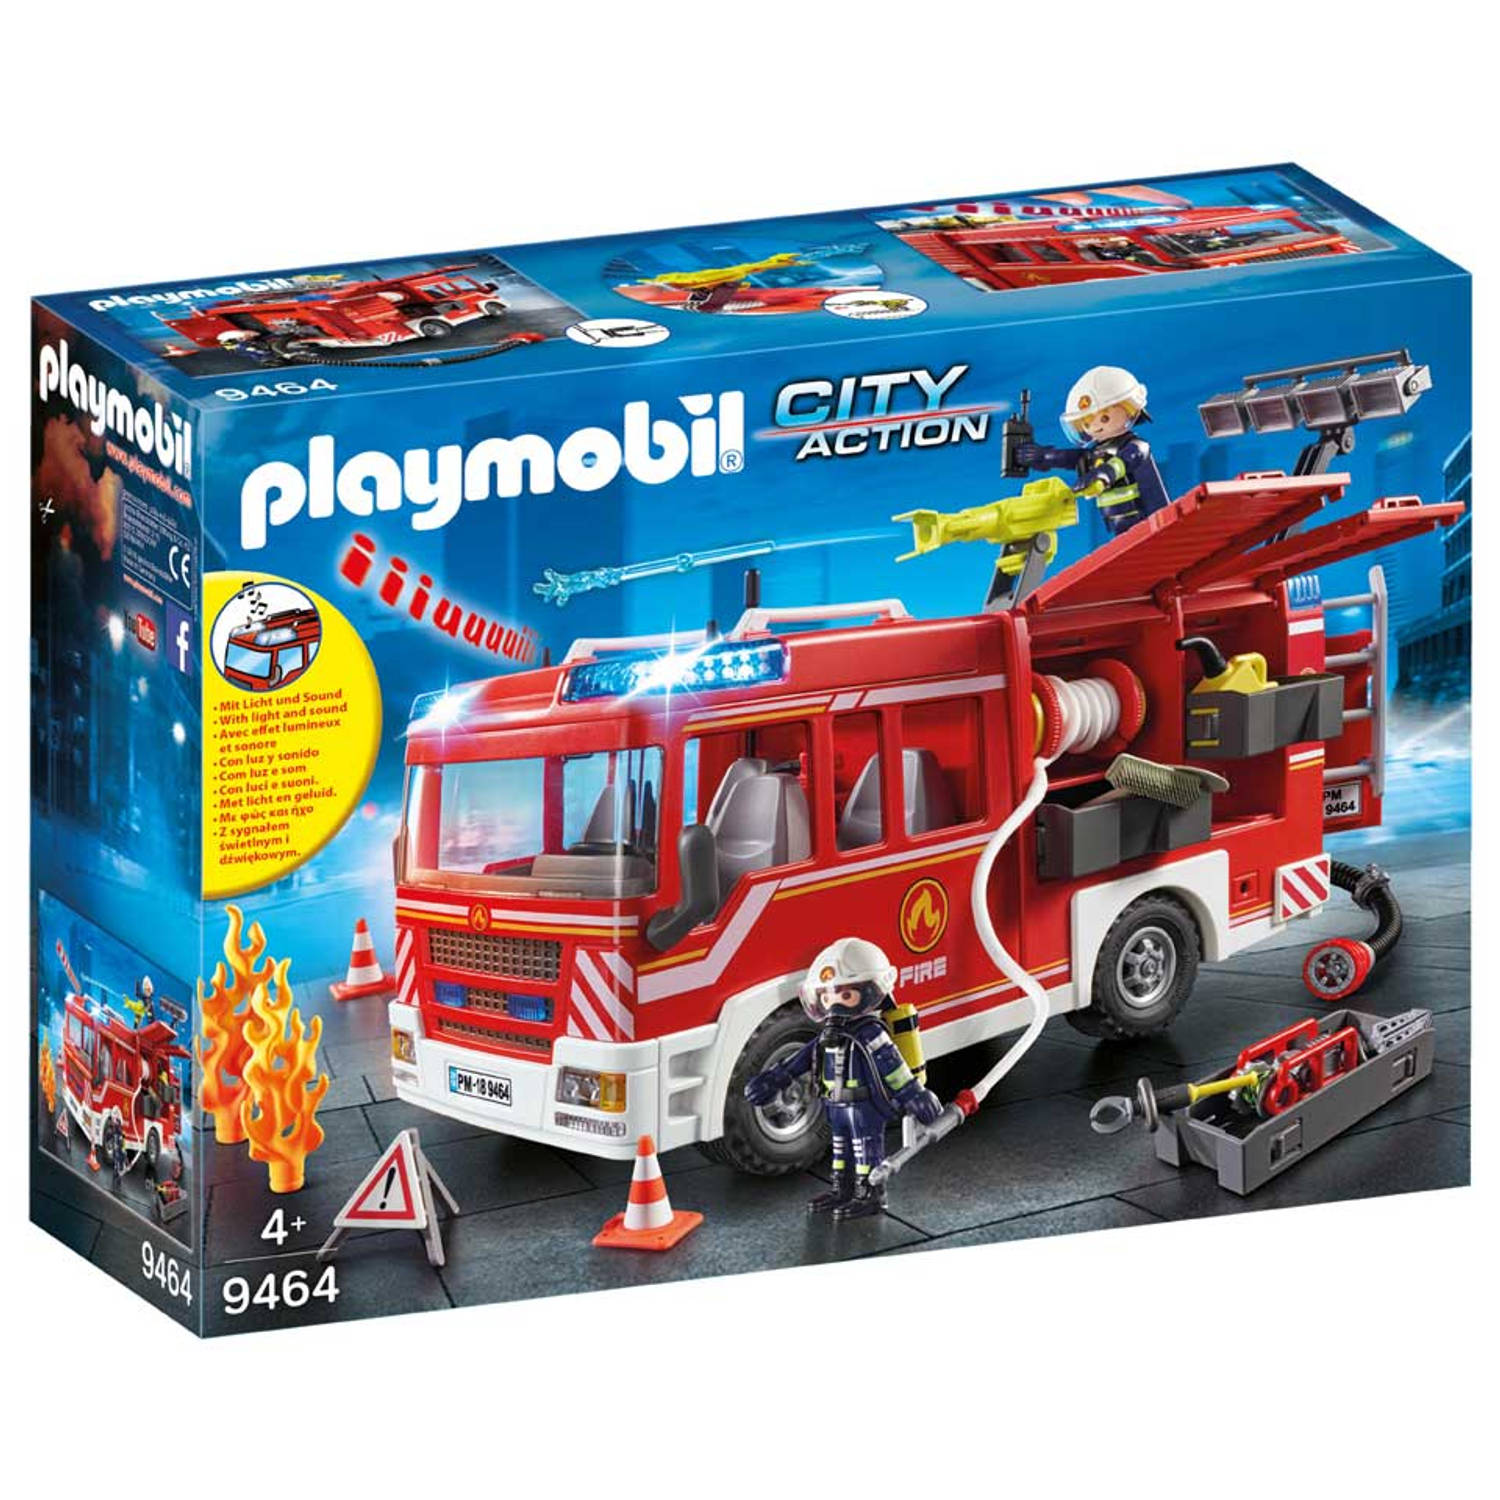 Playmobil City Action - brandweer pompwagen 9464